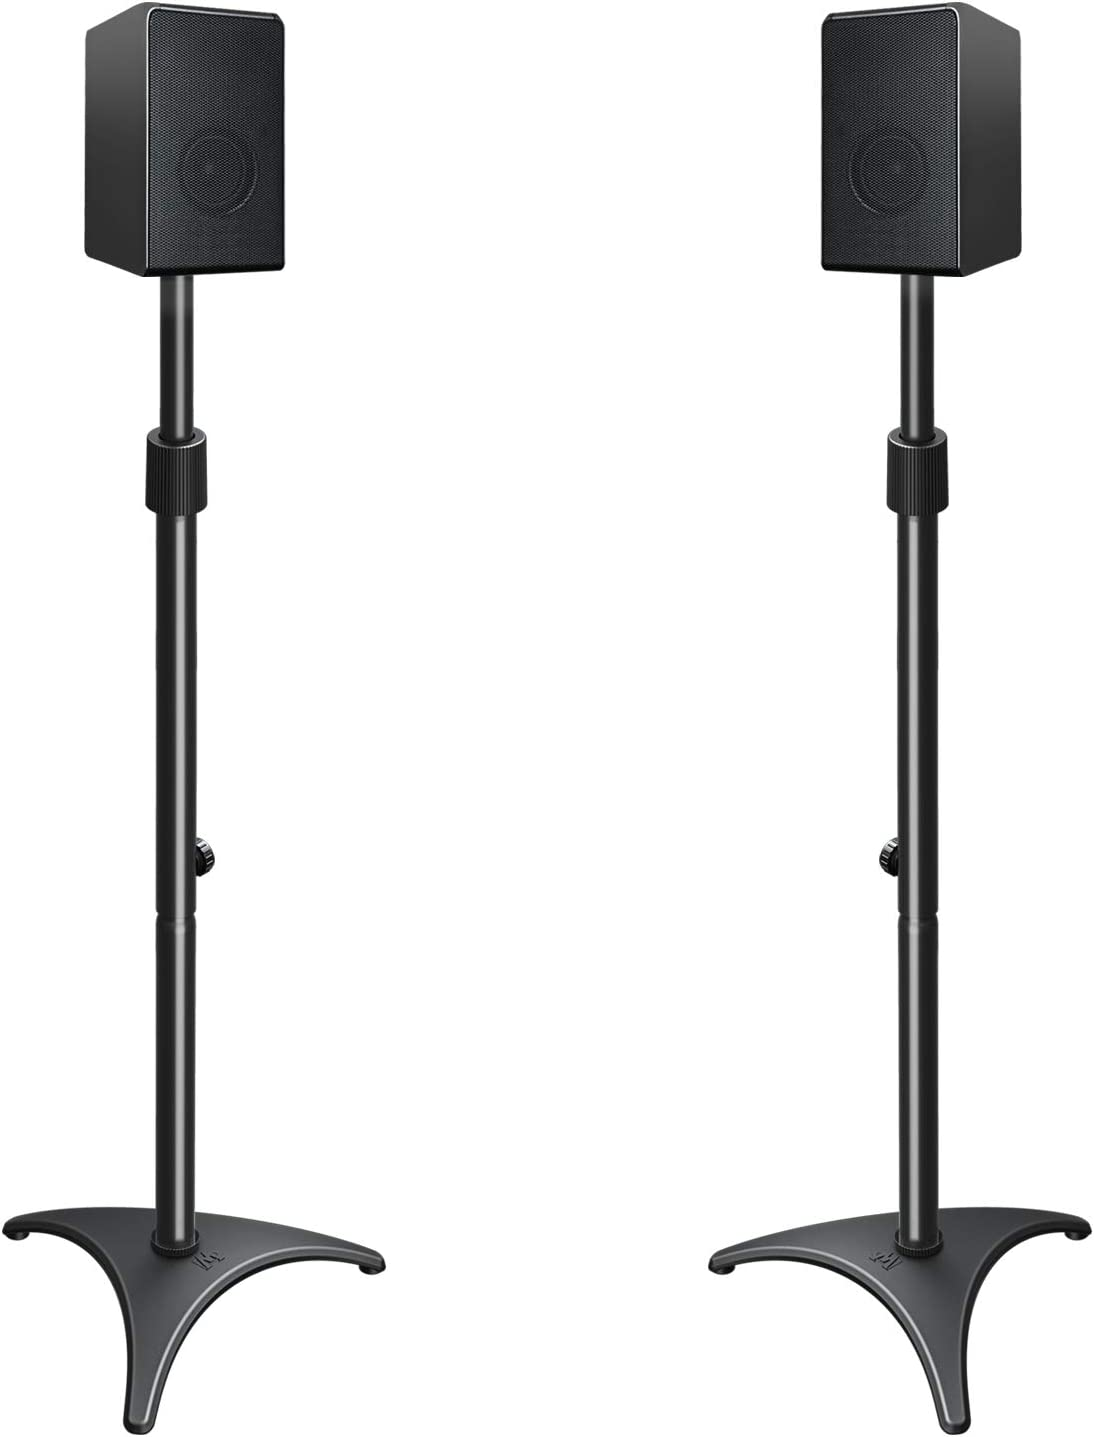 """Mounting Dream Height Adjustable Speaker Stands Mounts, One Pair Floor  Stands, Heavy Duty Base Extendable Tube, 9 lbs Capacity Per Stand,  9.9-9"""""""